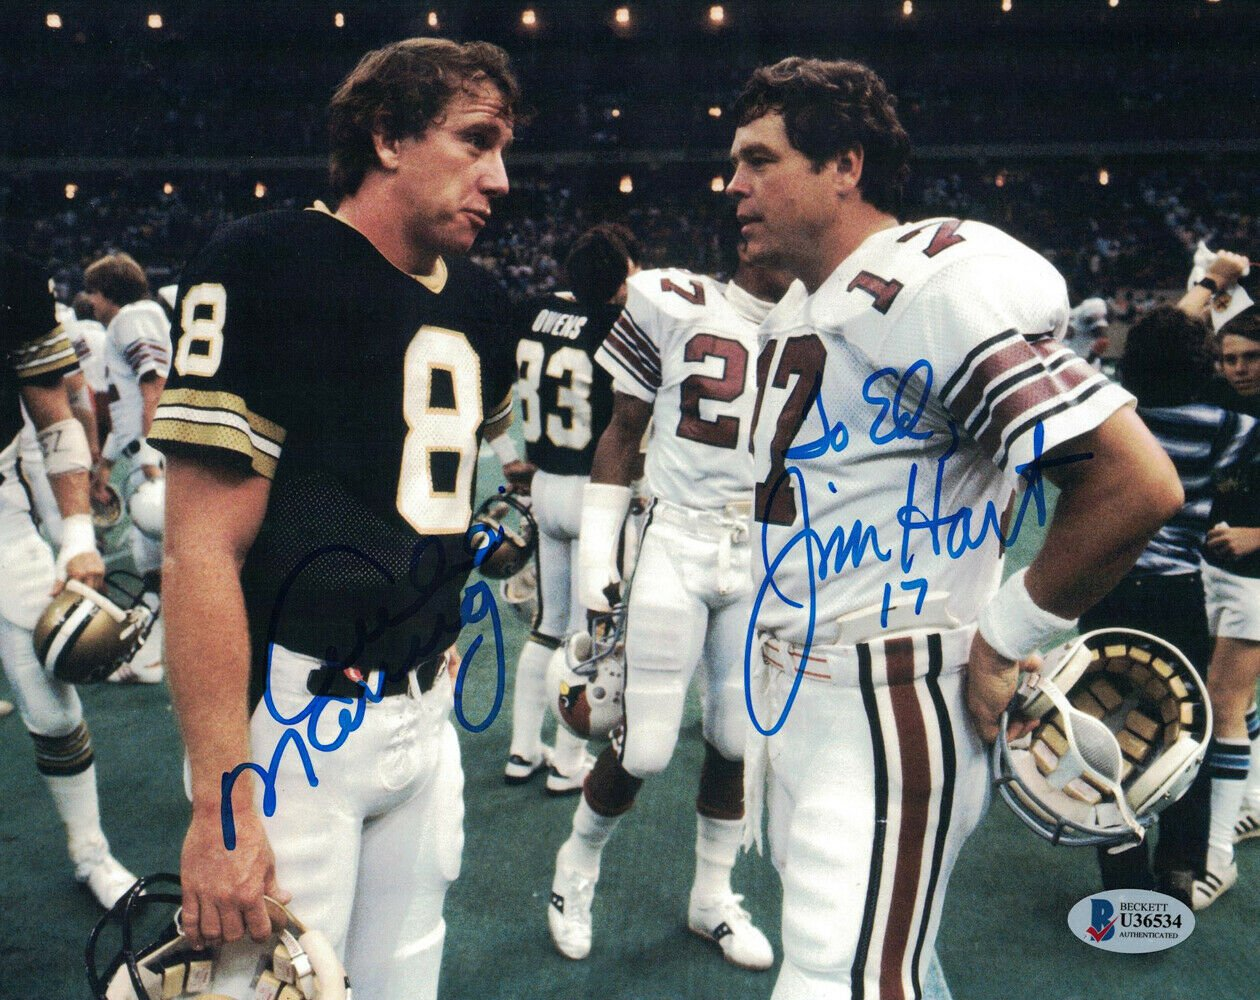 Archie Manning & Jim Hart Autographed Signed 8x10 Photo BECKETT